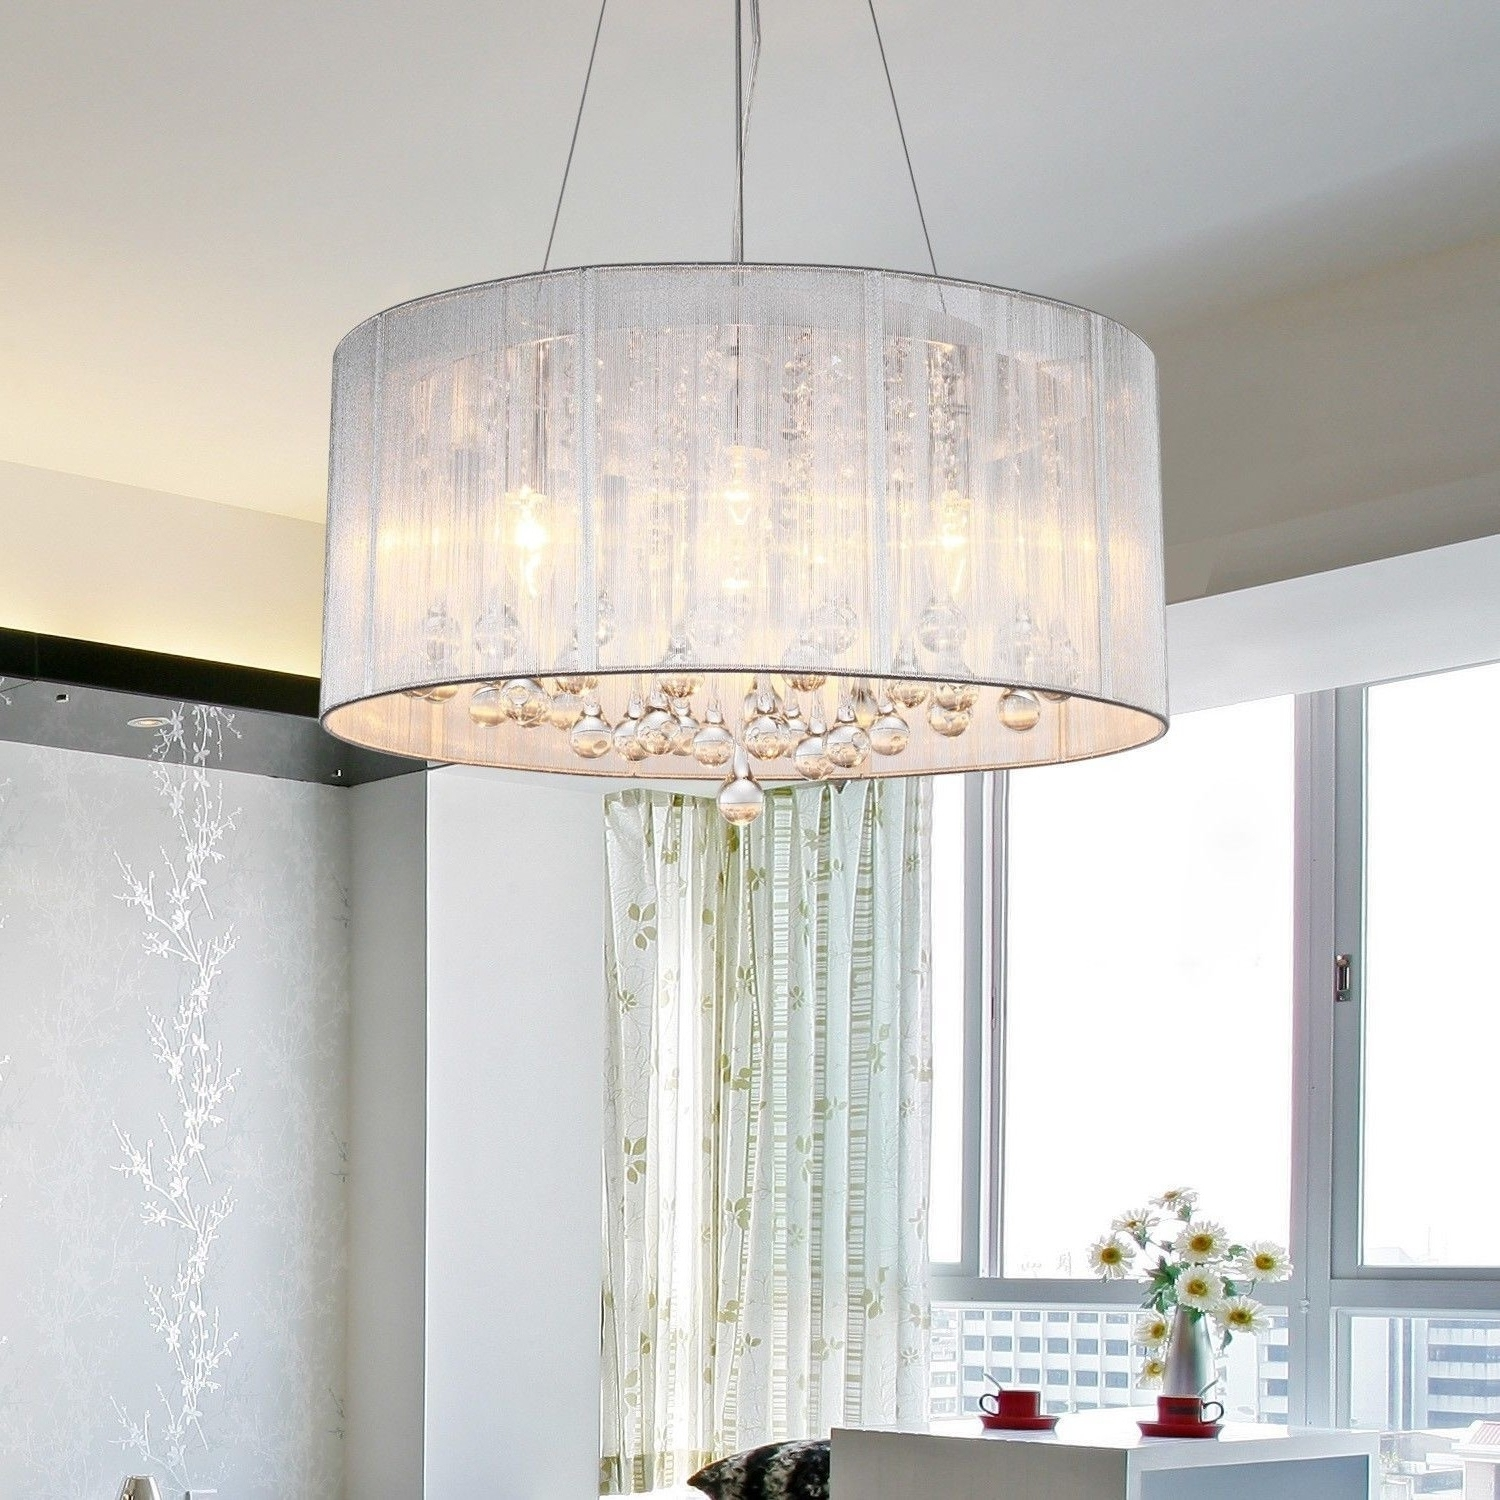 Crystal Lamp Shades For Chandeliers : Lamp World Throughout Most Current Chandeliers With Lamp Shades (View 17 of 20)